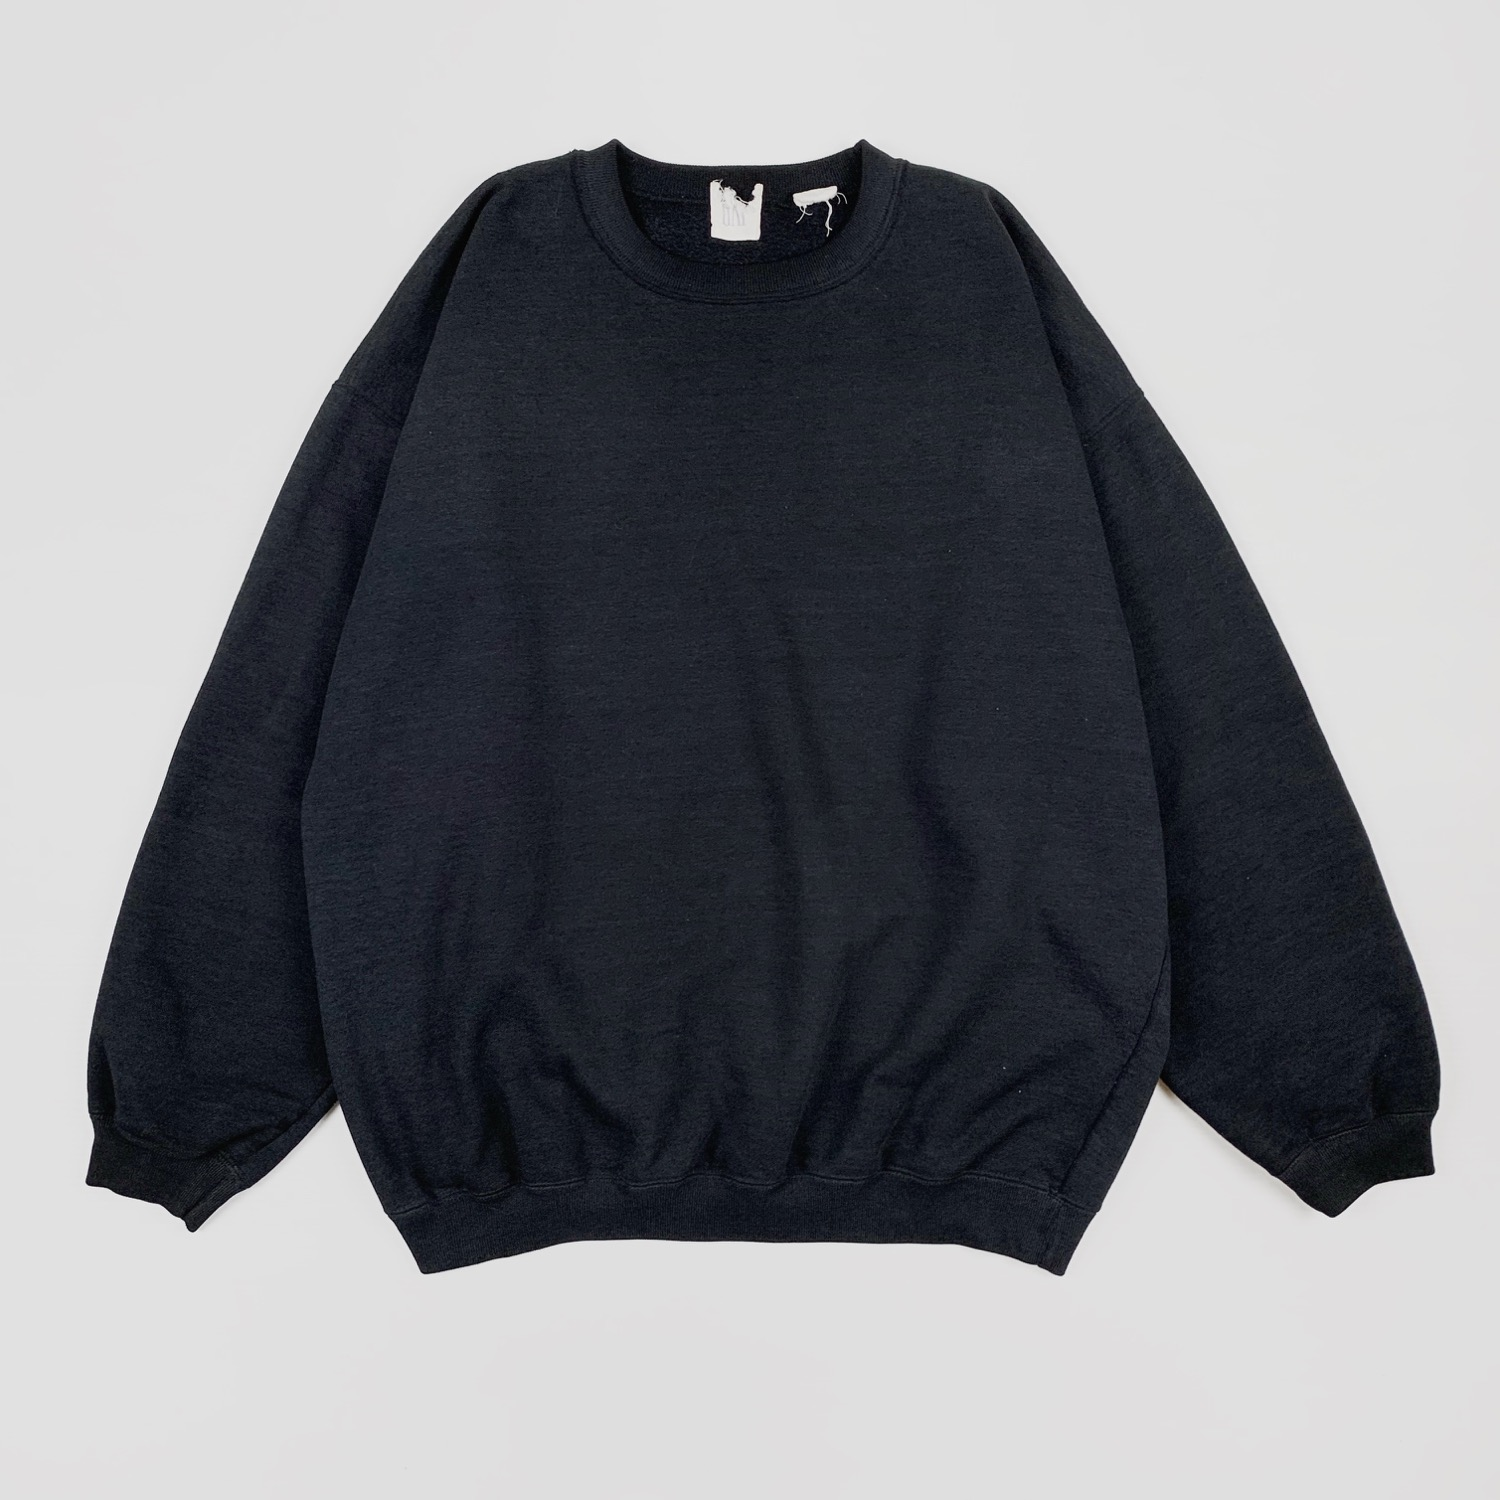 GAP Crew Sweatshirt (L)